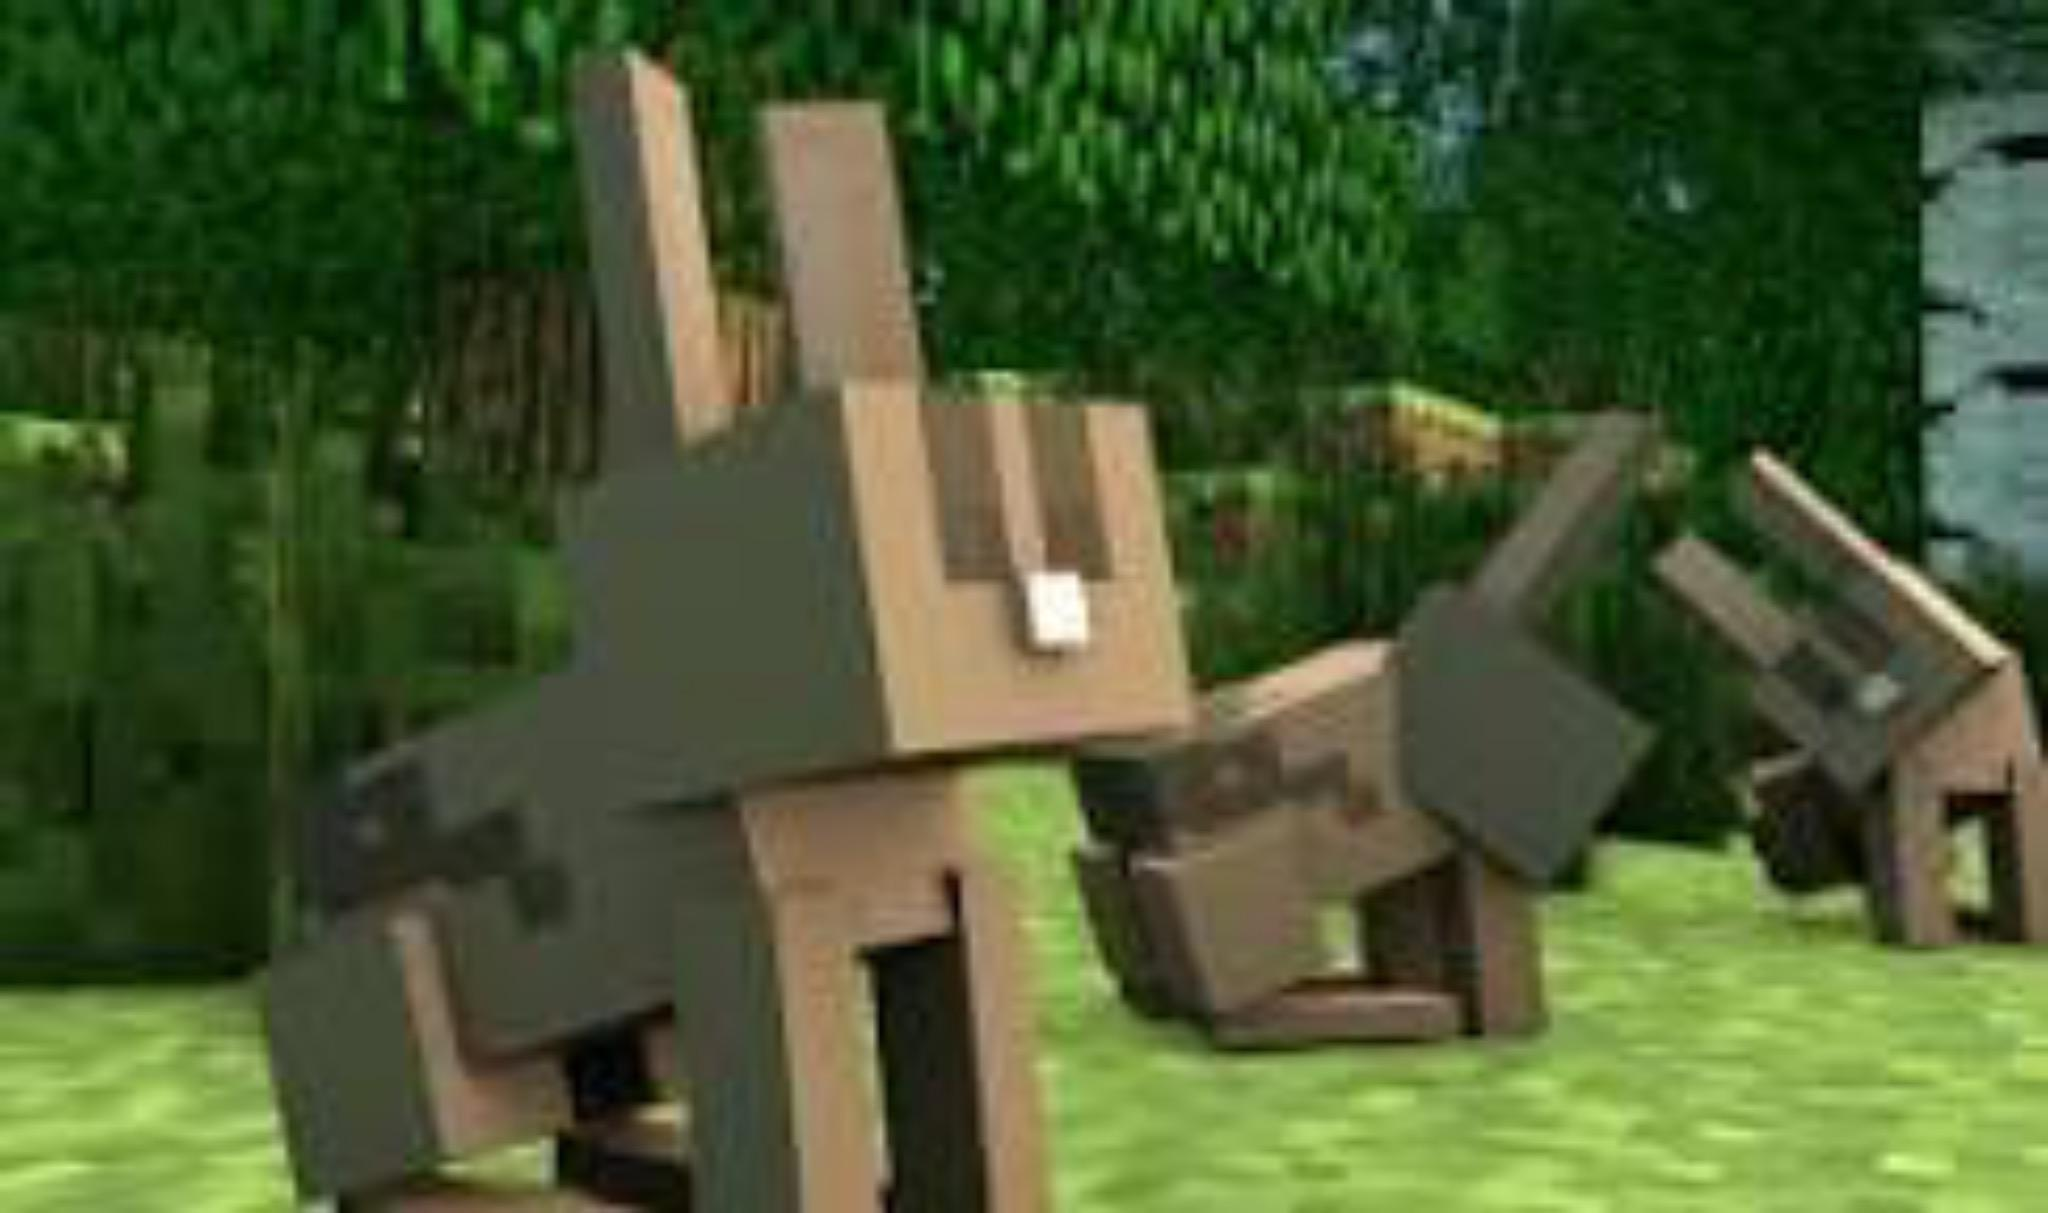 What MineCraft animal are you? (1)